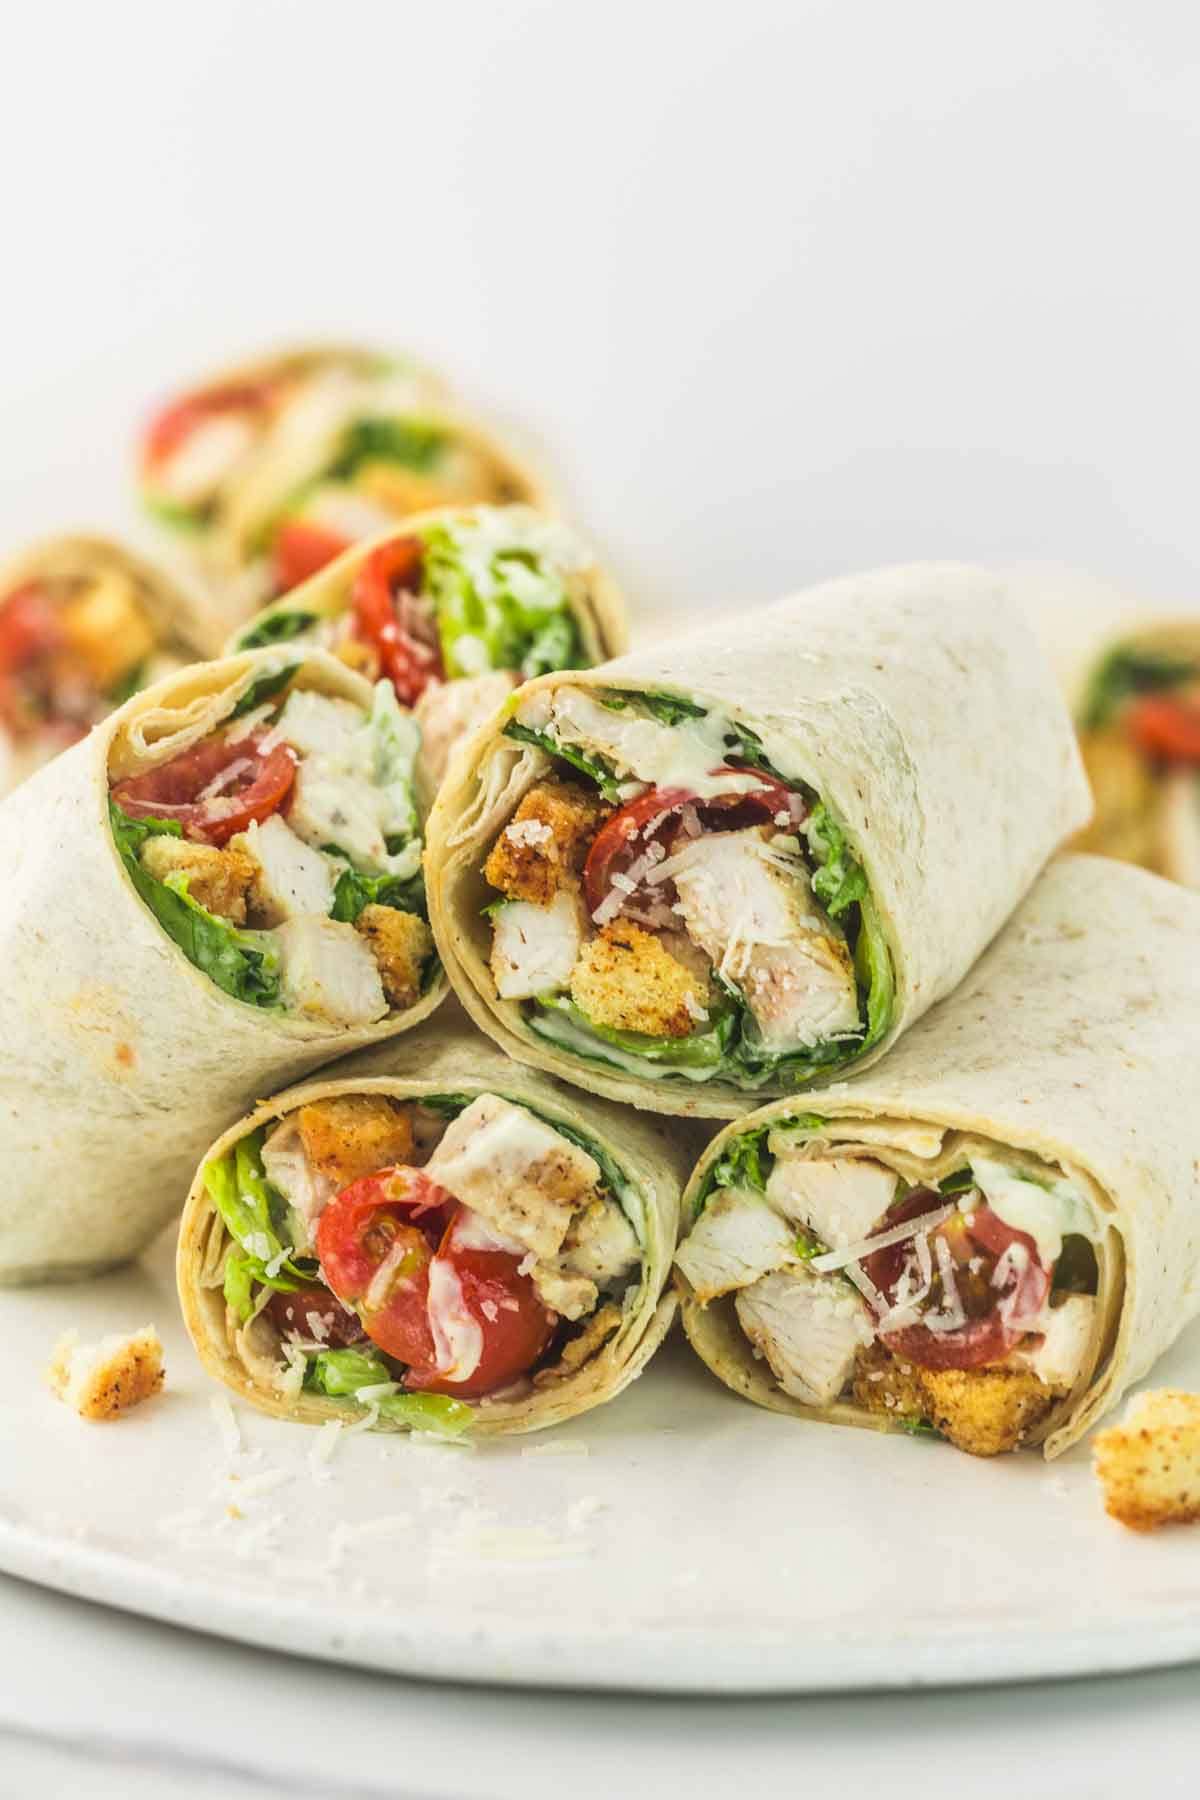 Chicken caesar wraps cut in halves and stacked on each other on a white plate